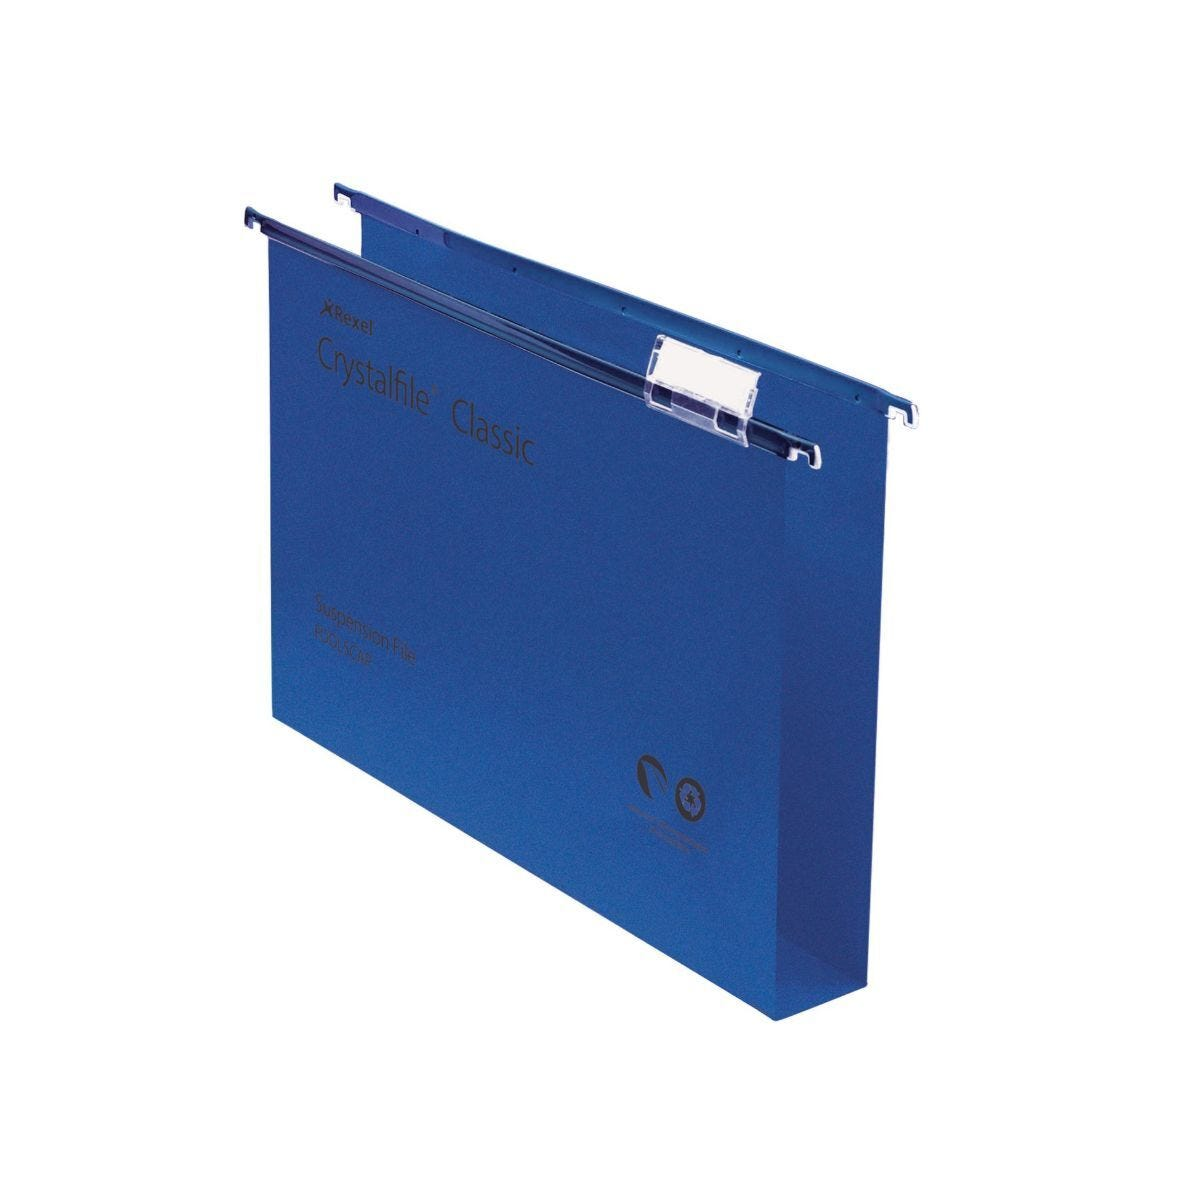 Rexel Crystalfile Classic Foolscap Suspension File 30mm Pack of 50 Blue